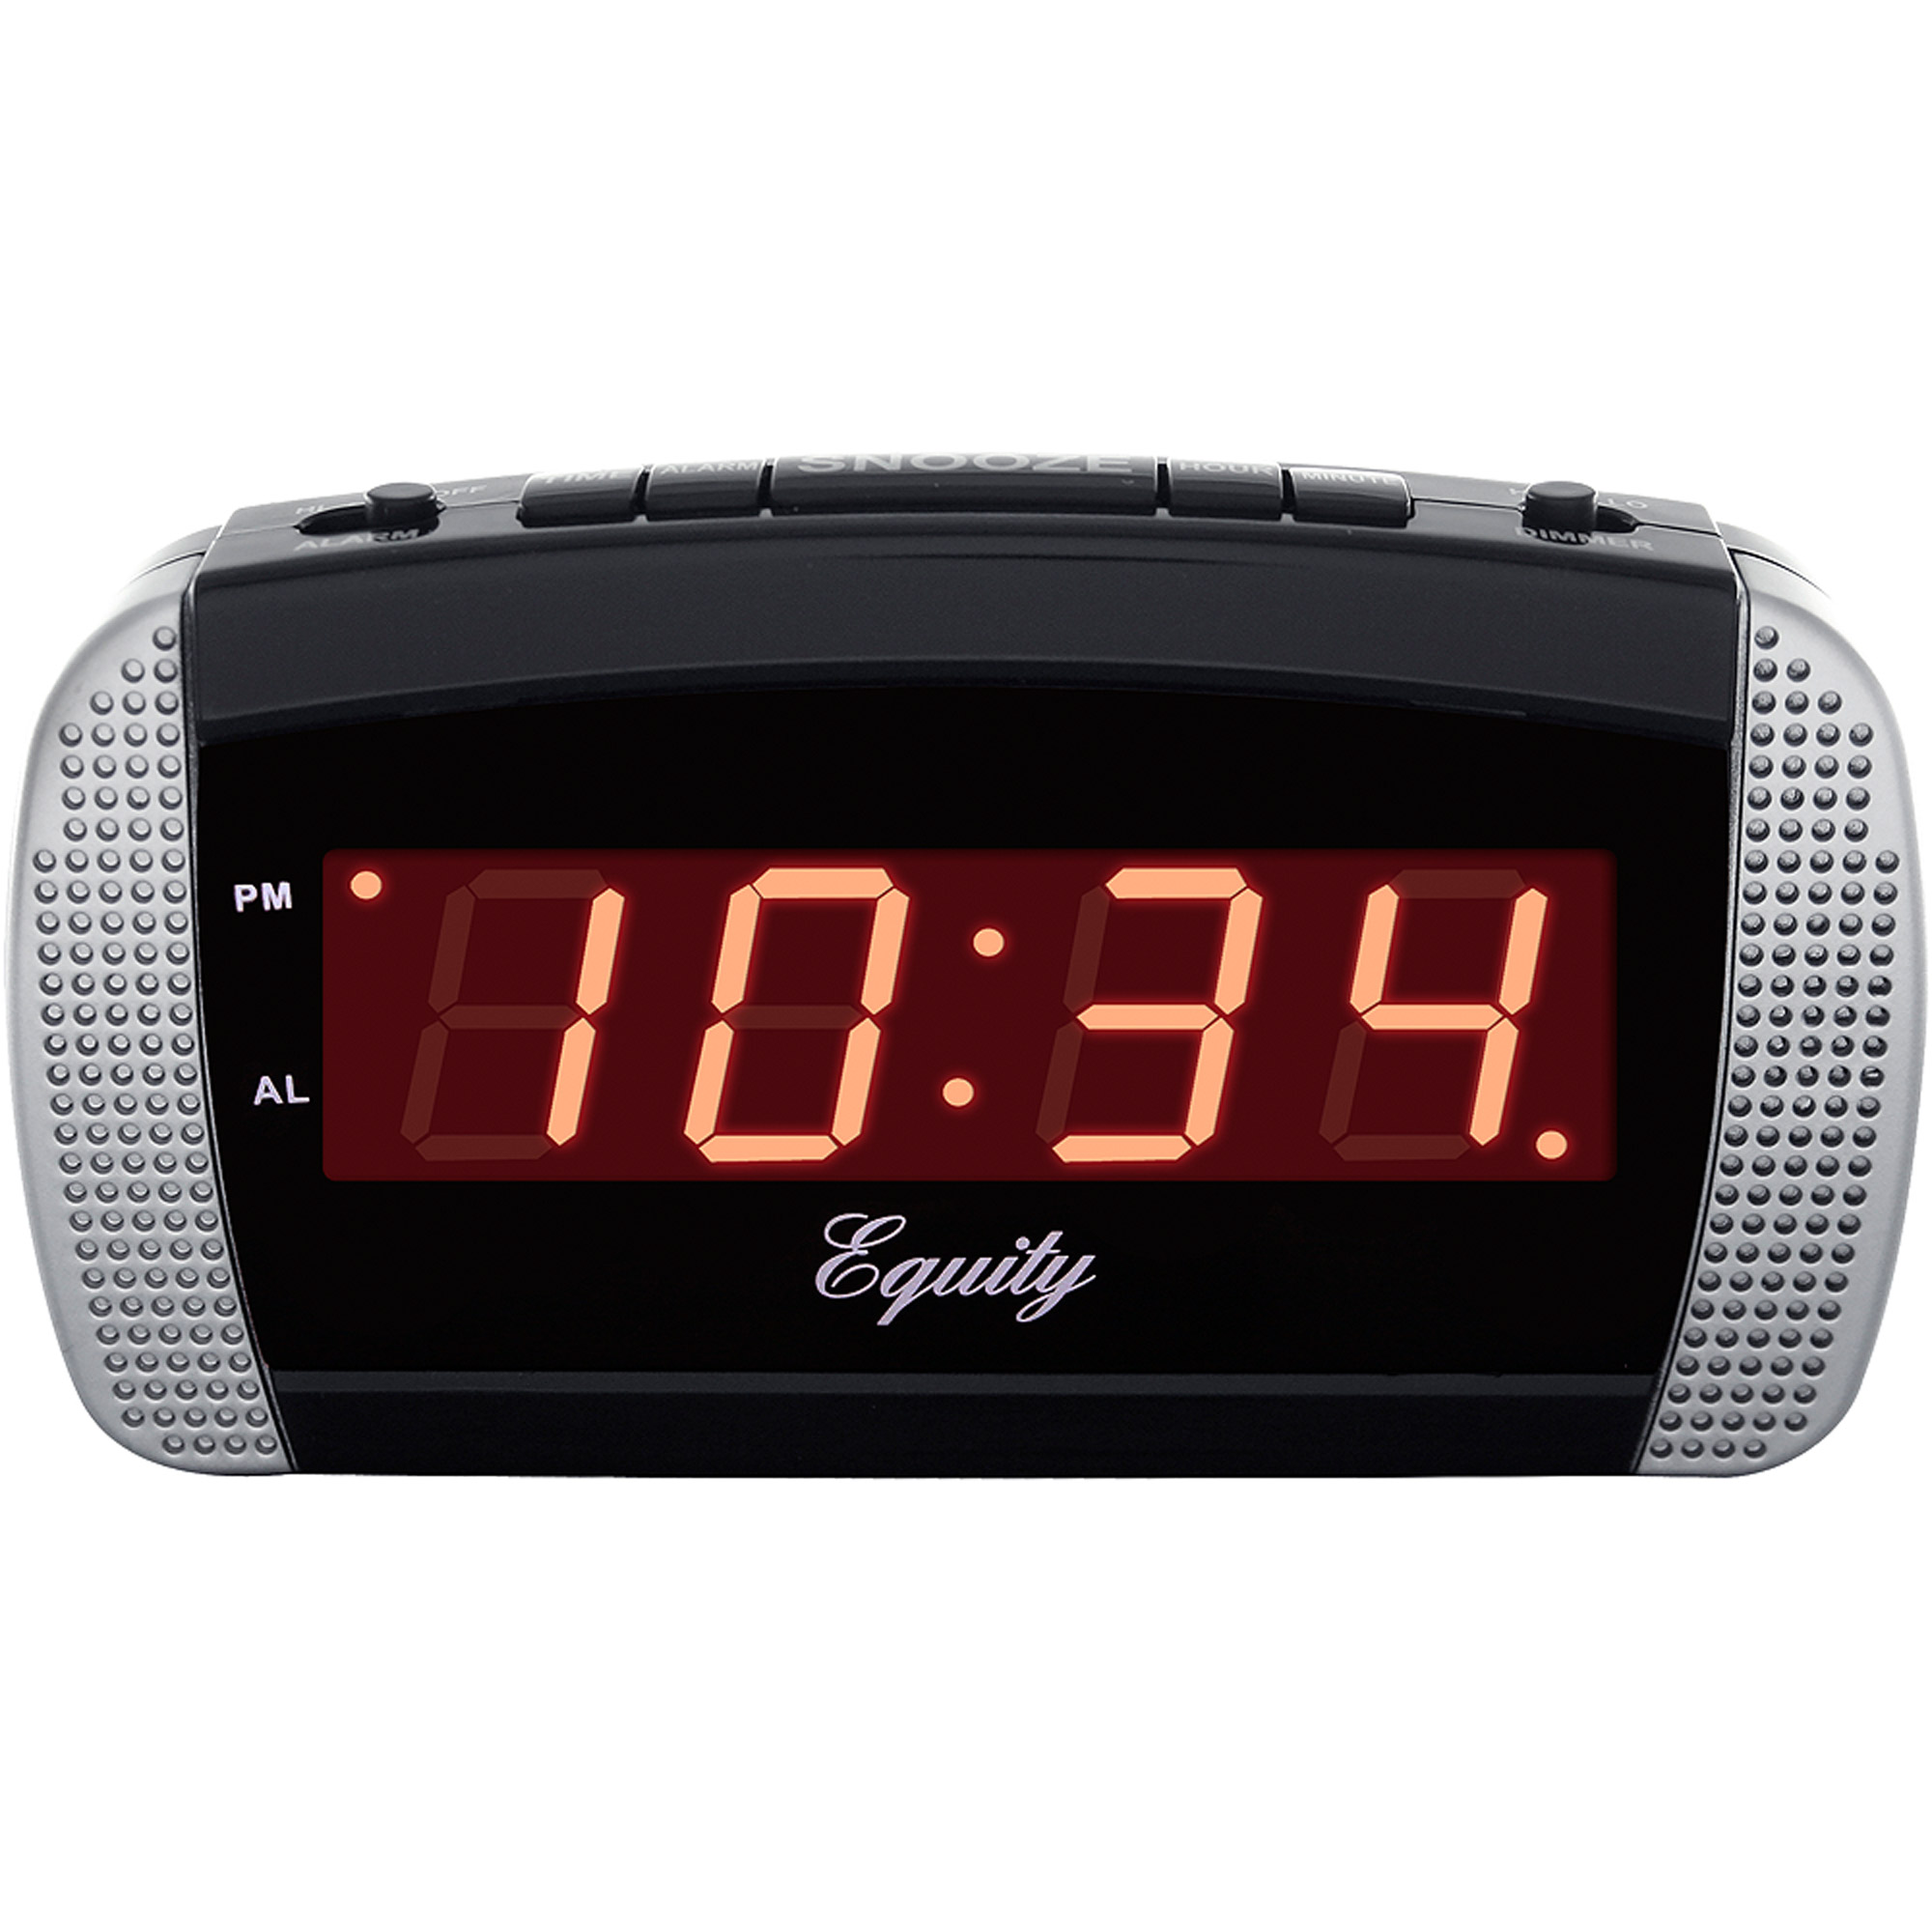 La Crosse Technology Equity Super Loud LED Alarm Clock